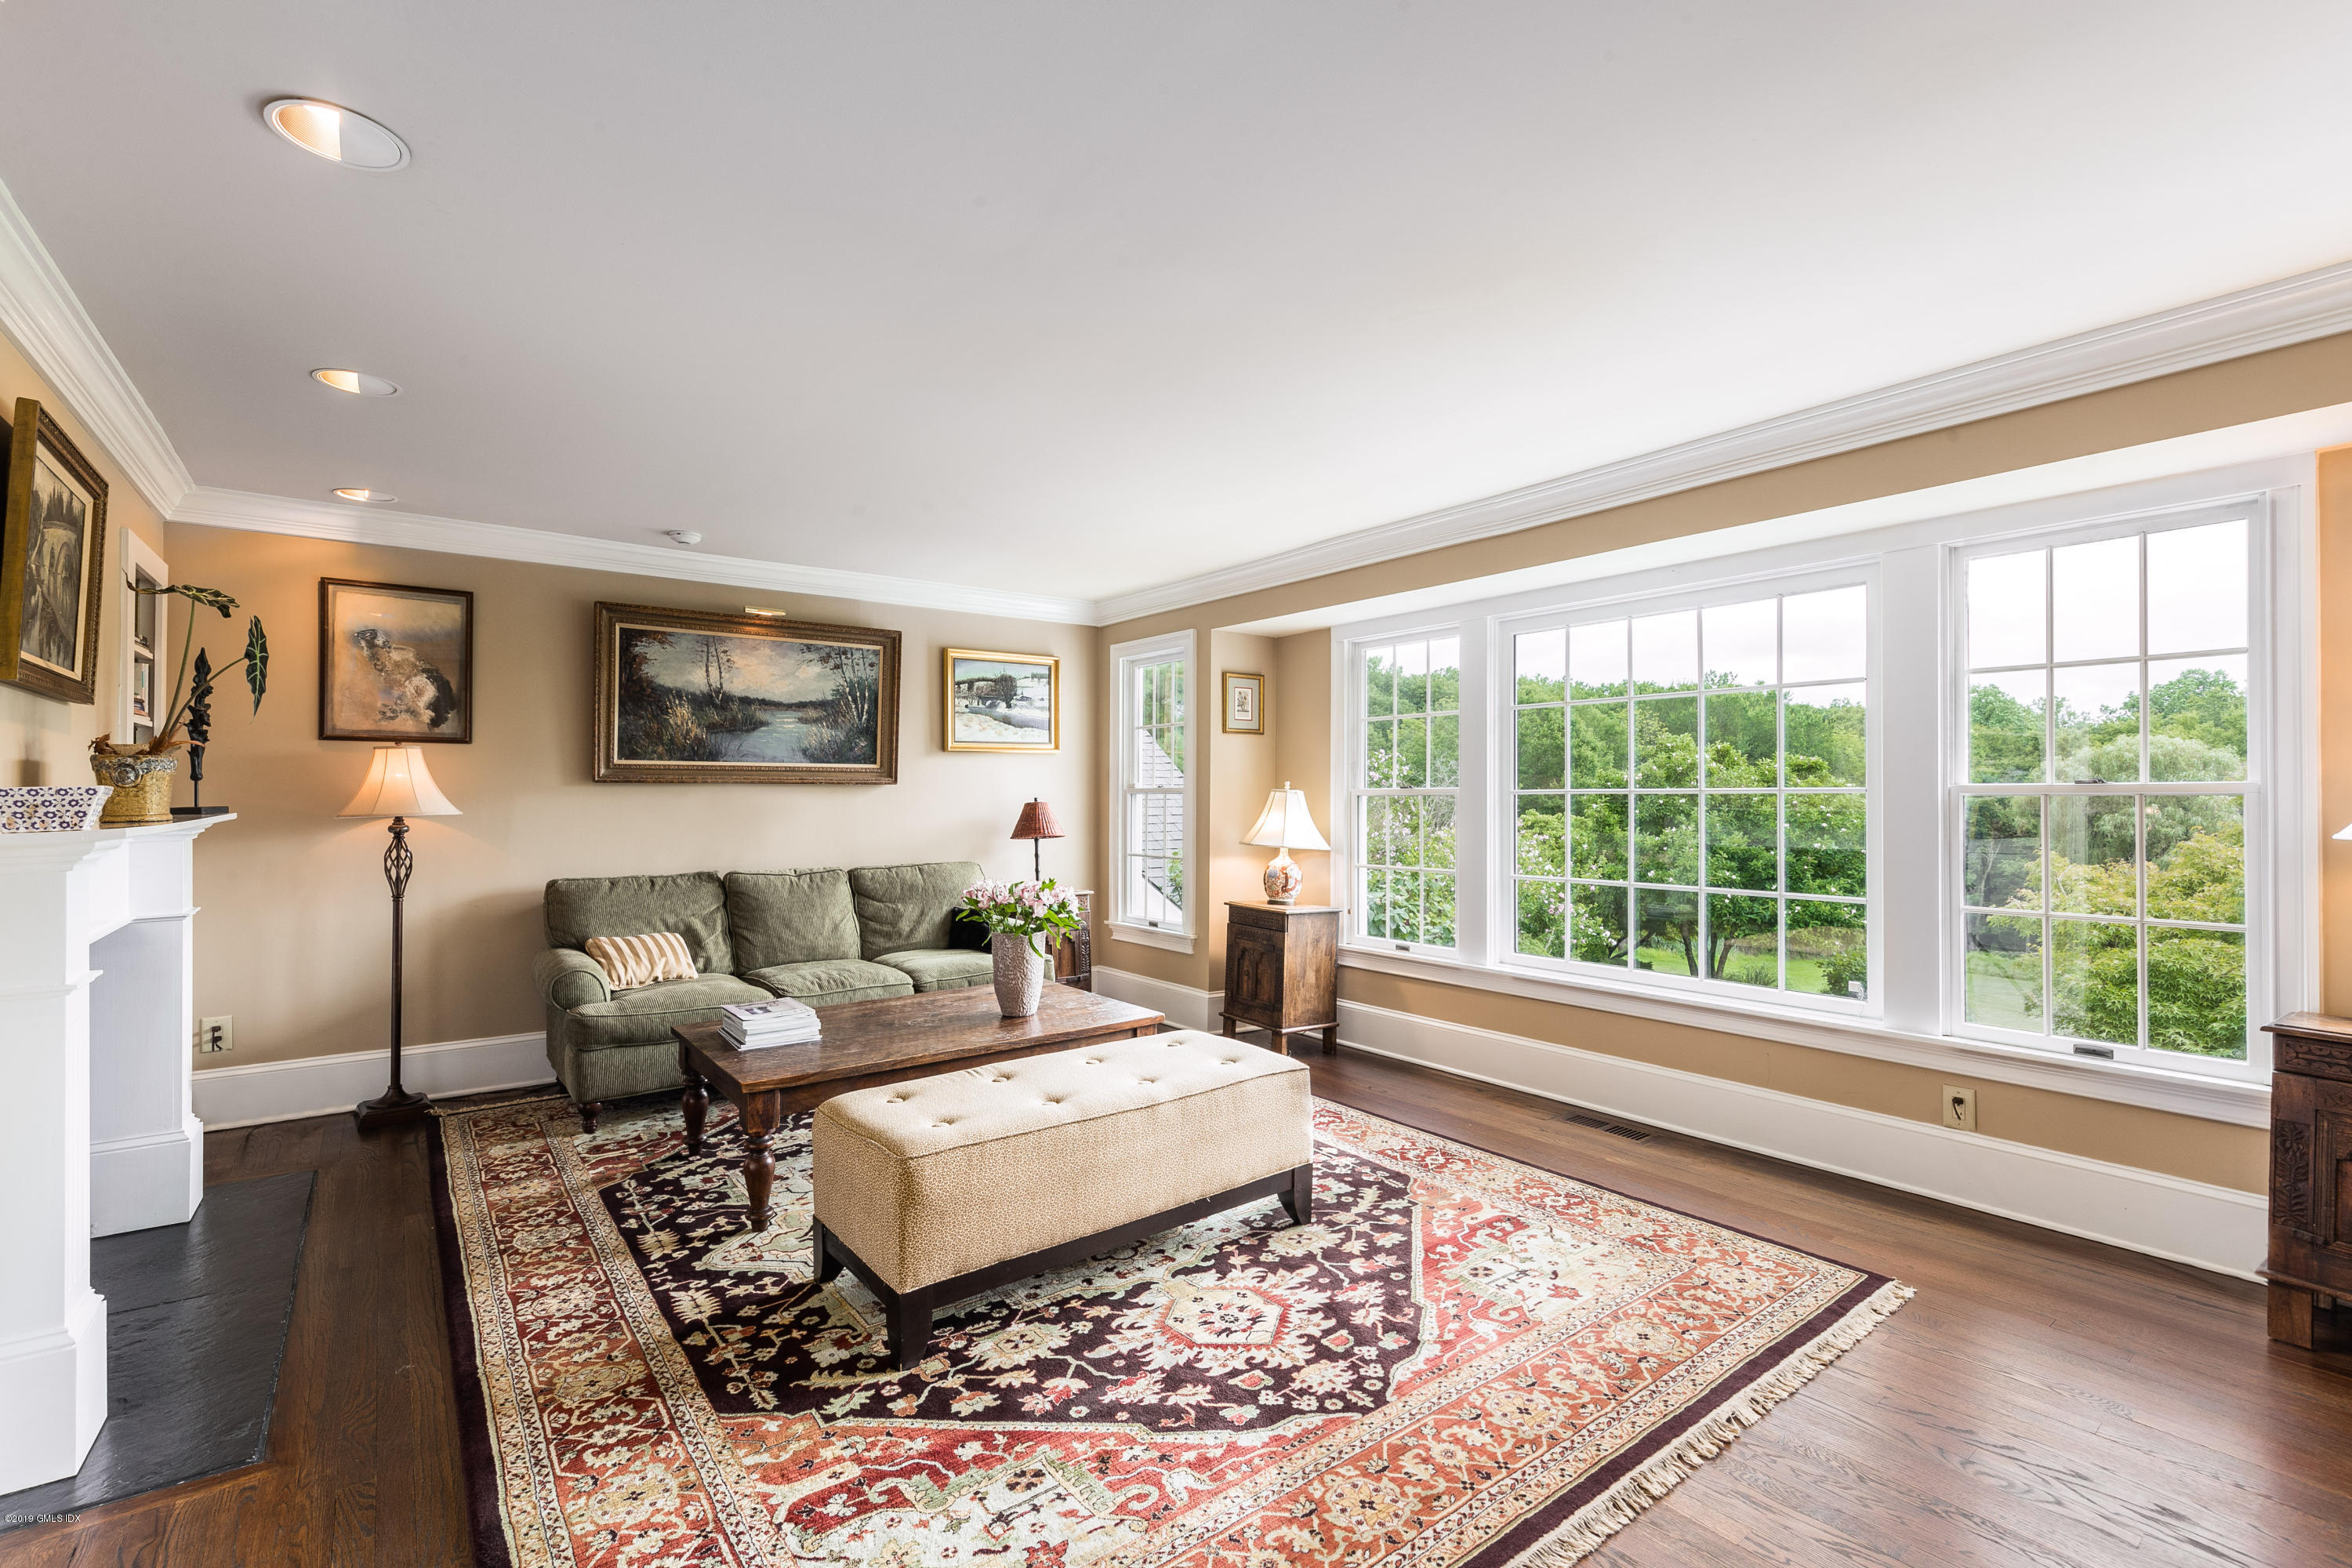 345 Round Hill Road,Greenwich,Connecticut 06831,6 Bedrooms Bedrooms,4 BathroomsBathrooms,Single family,Round Hill,108565